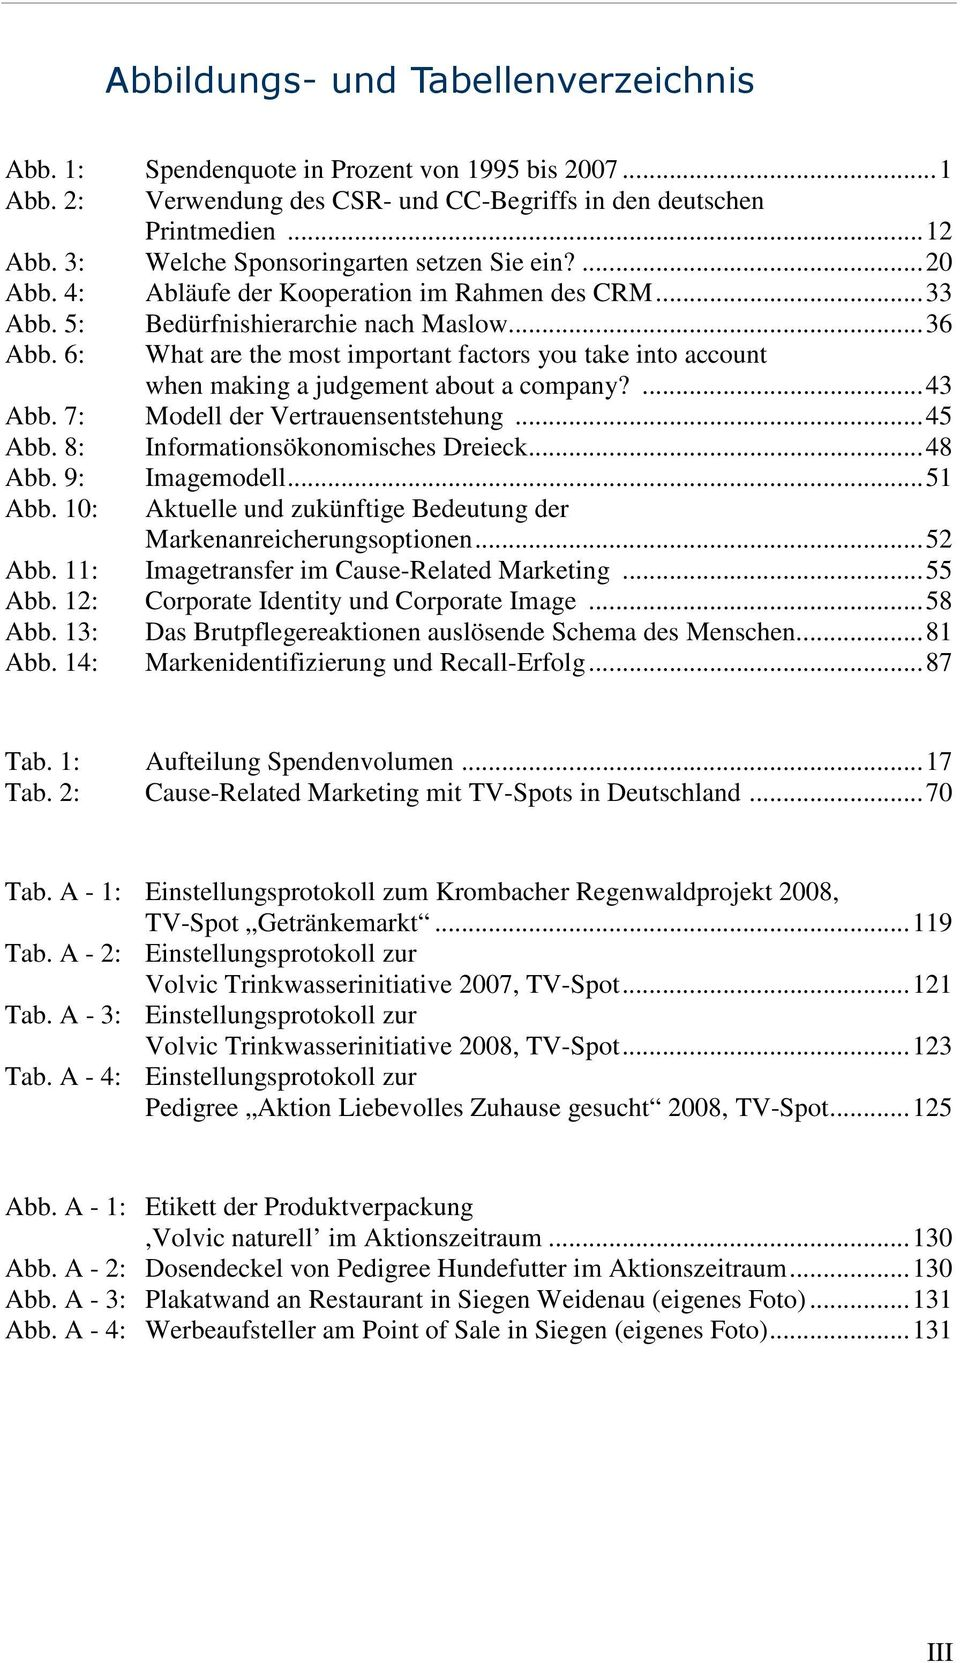 6: What are the most important factors you take into account when making a judgement about a company?...43 Abb. 7: Modell der Vertrauensentstehung...45 Abb. 8: Informationsökonomisches Dreieck...48 Abb.